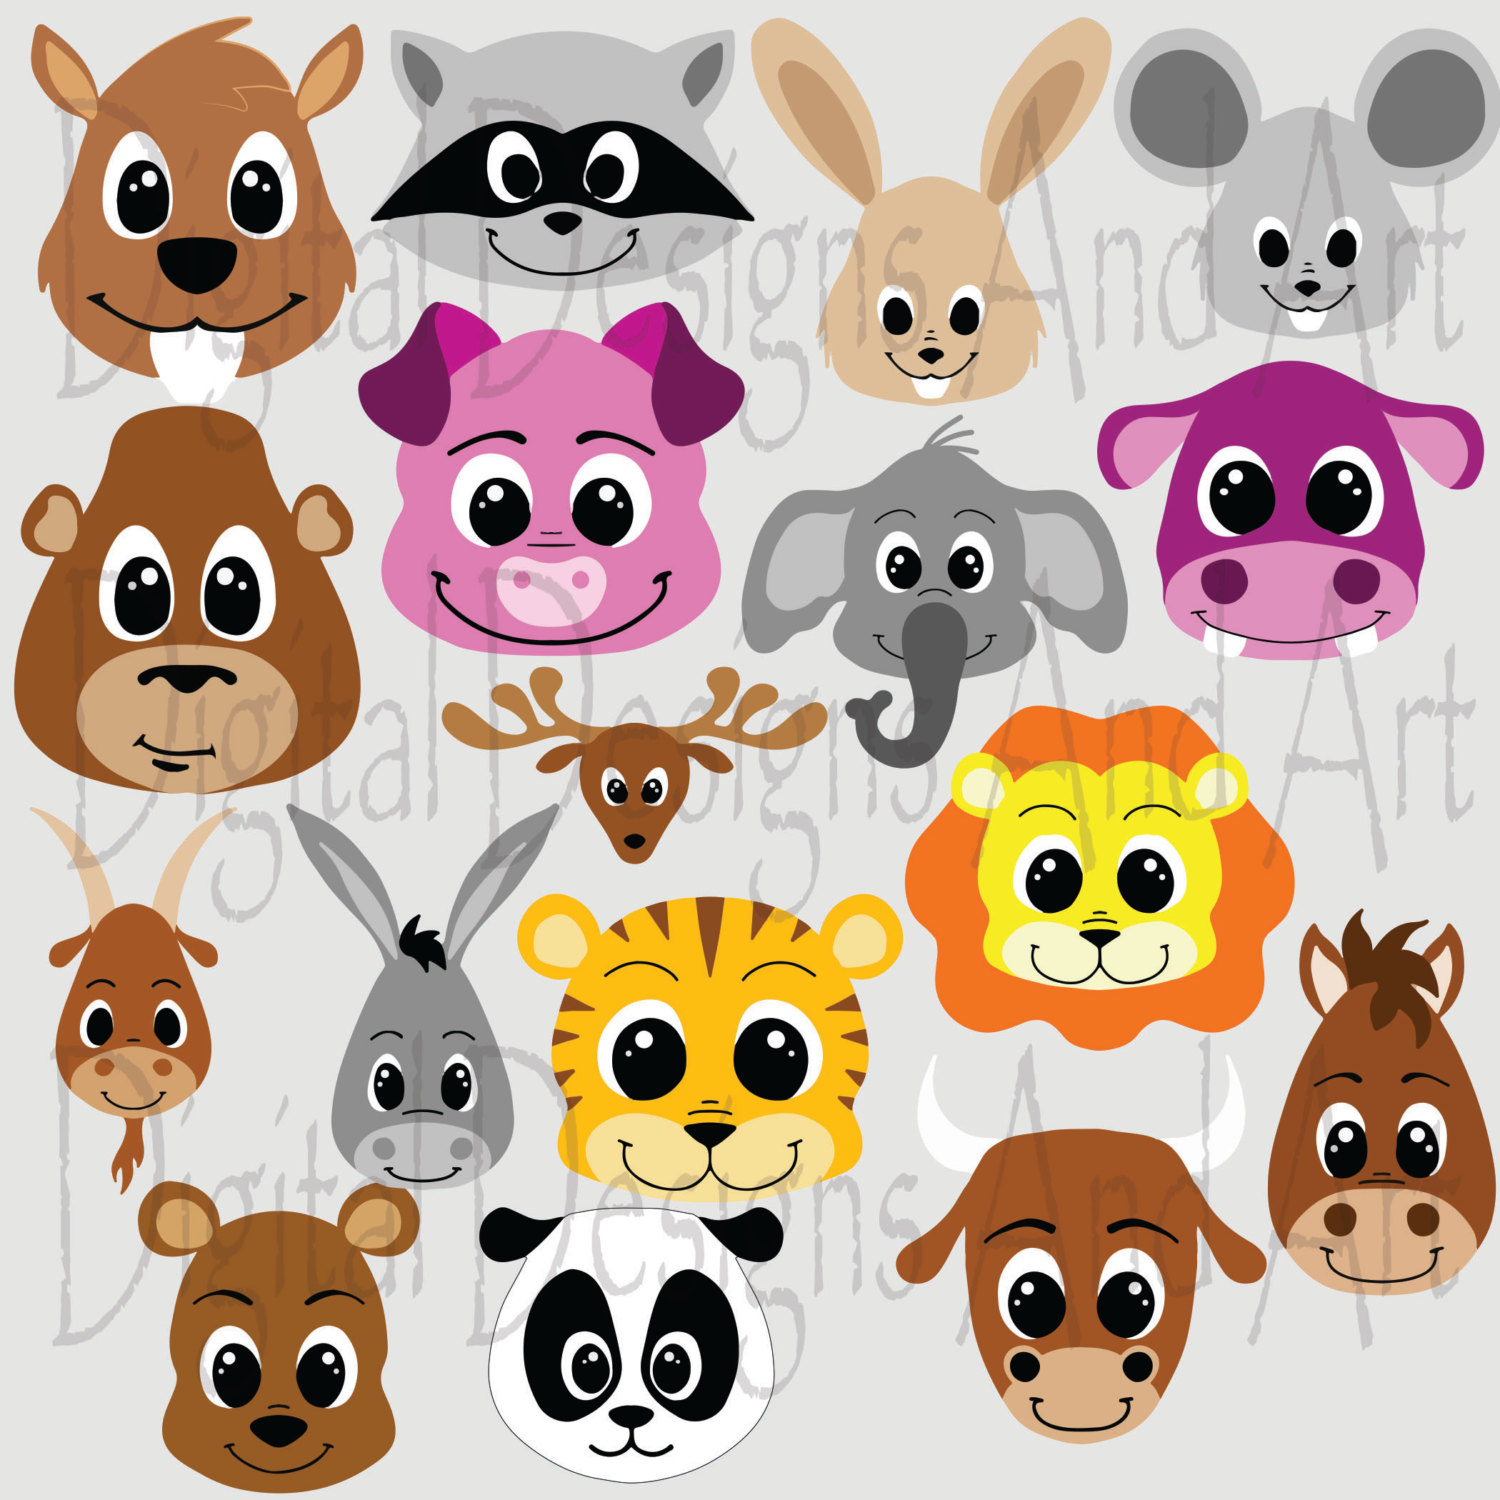 Animal face clipart.